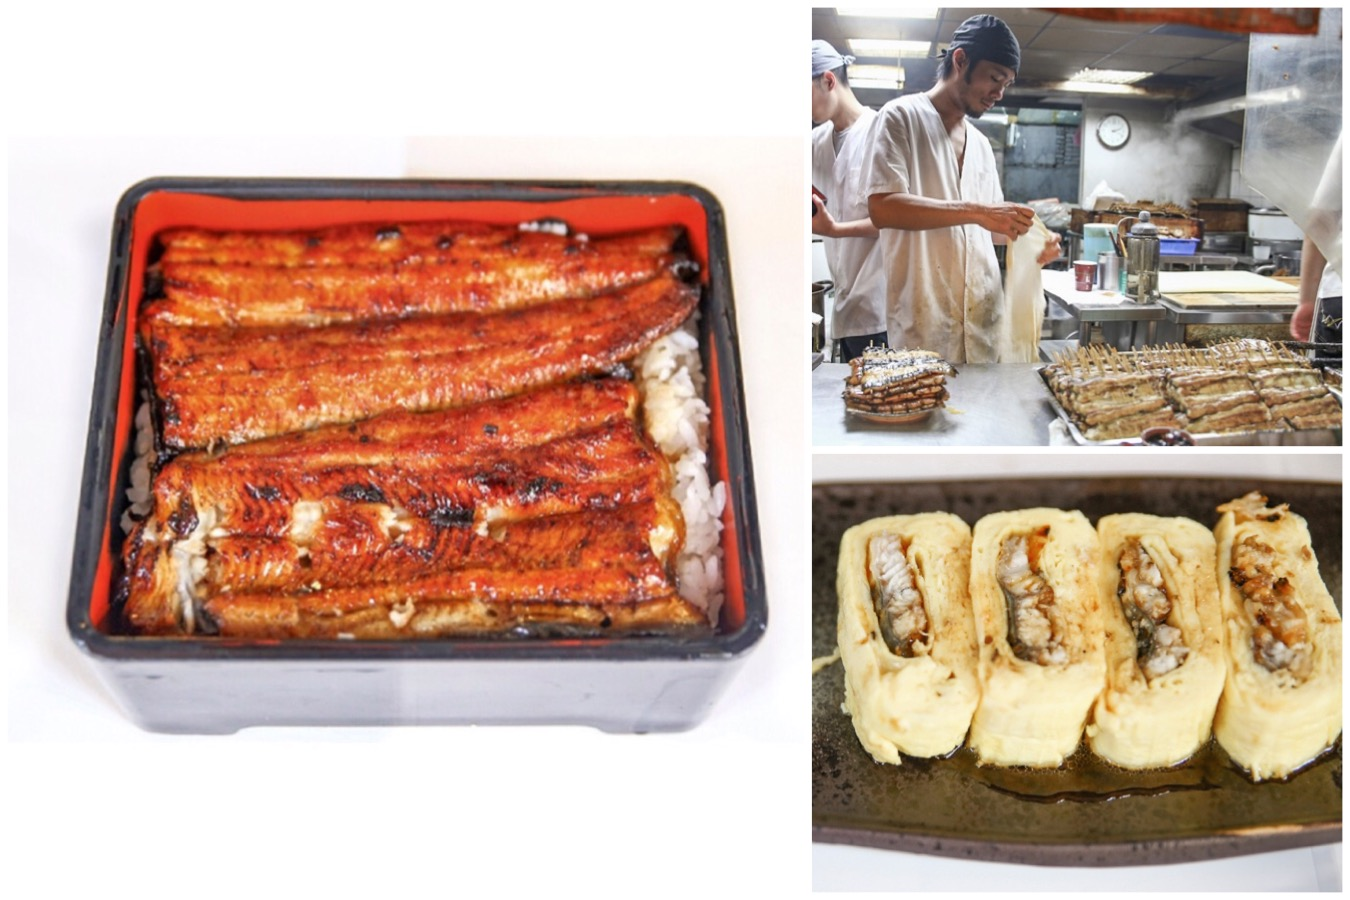 Fei Qian Wu 肥前屋 - Most Famous Unagi Restaurant In Taipei, TWD250 (SGD$11.25) For A Box. $4.50 For Katsu Don